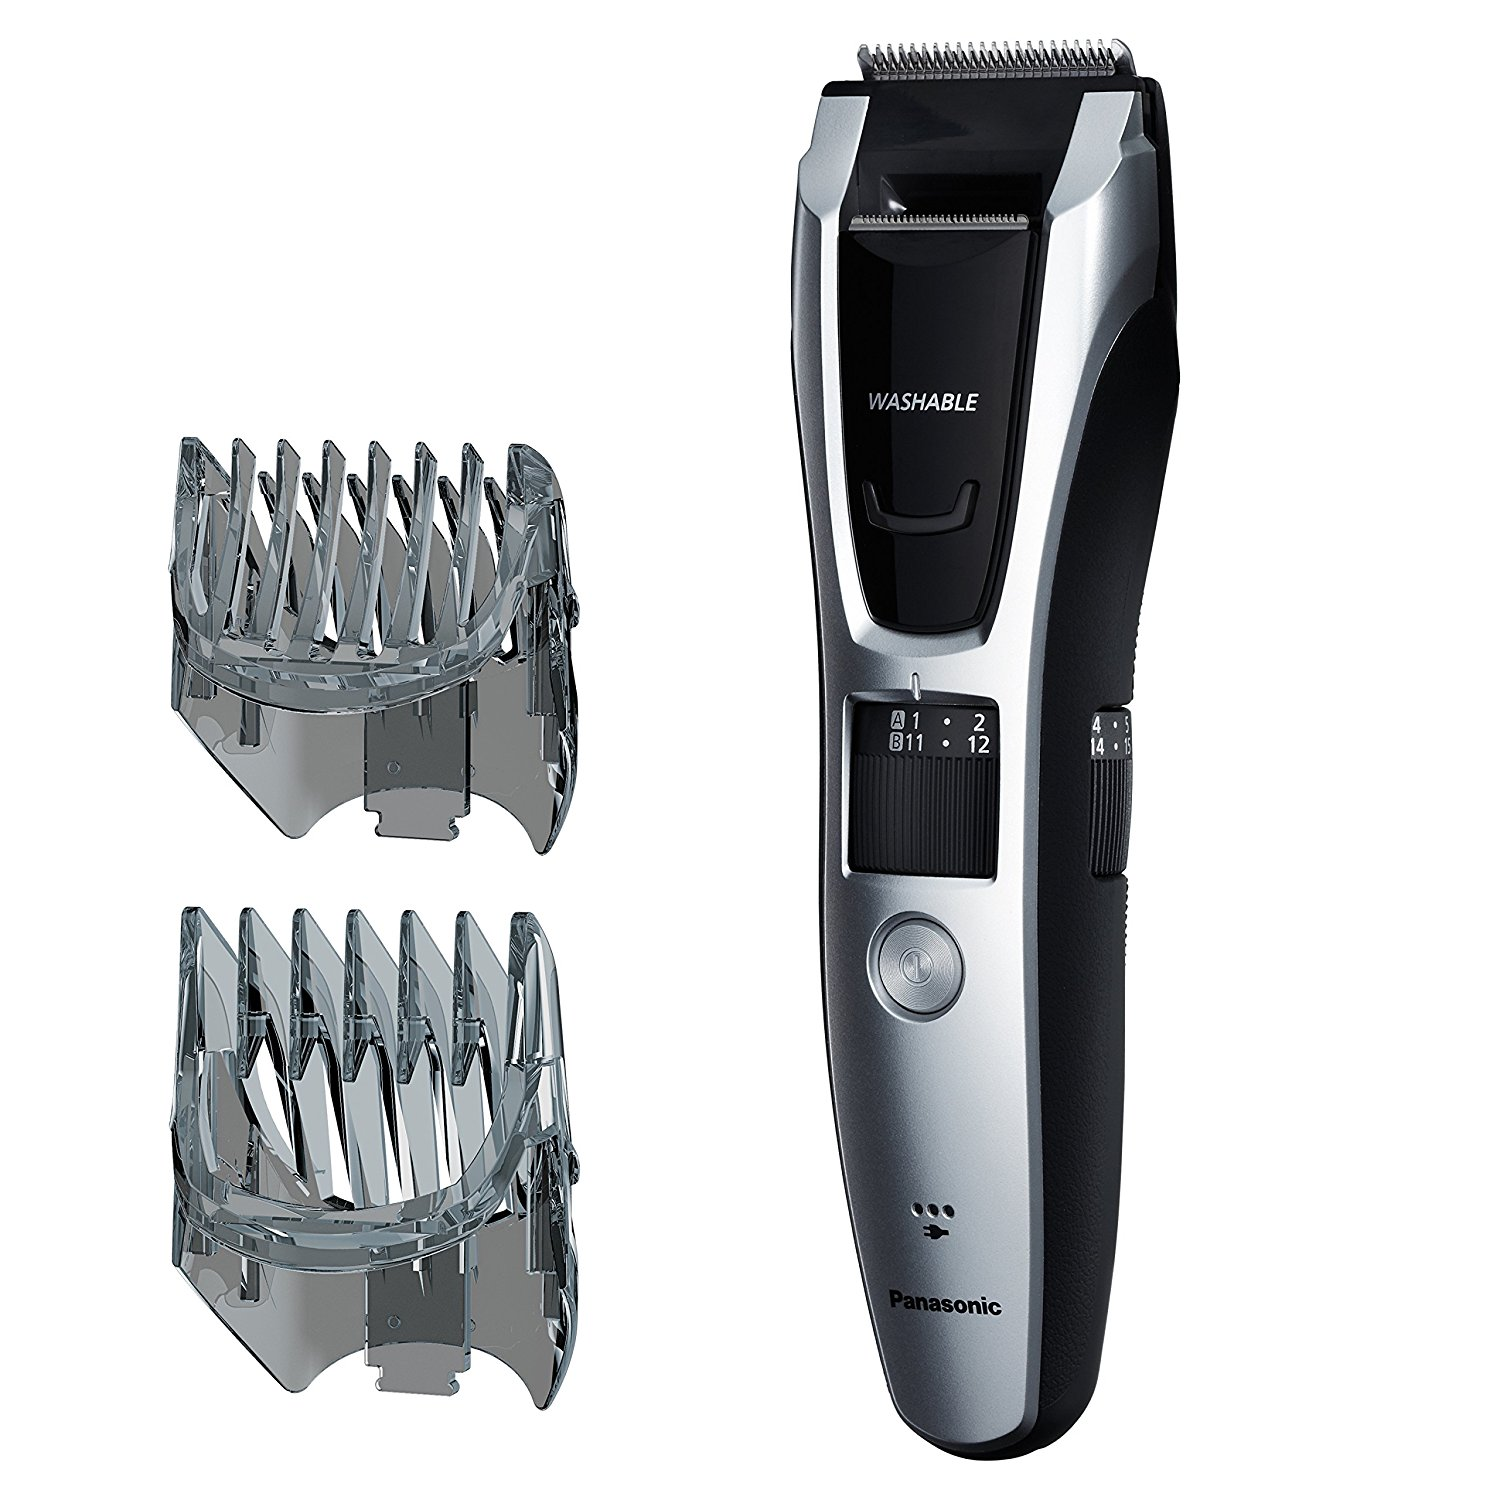 Amazon.com: Panasonic Beard and Mustache Trimmer and Hair Clipper ...